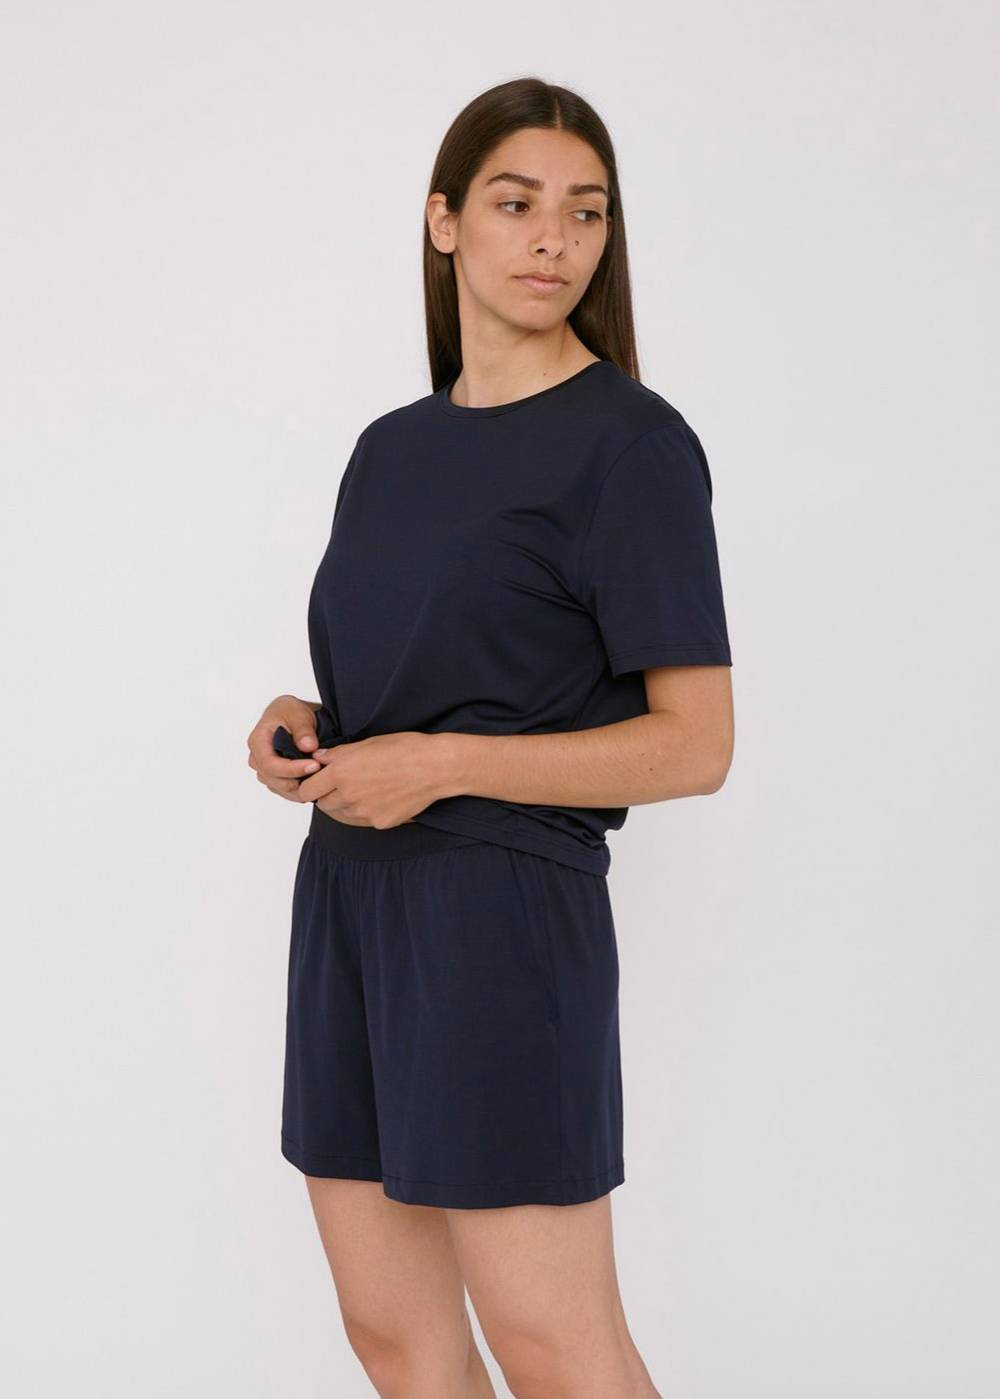 organic basics cheap ethical loungewear